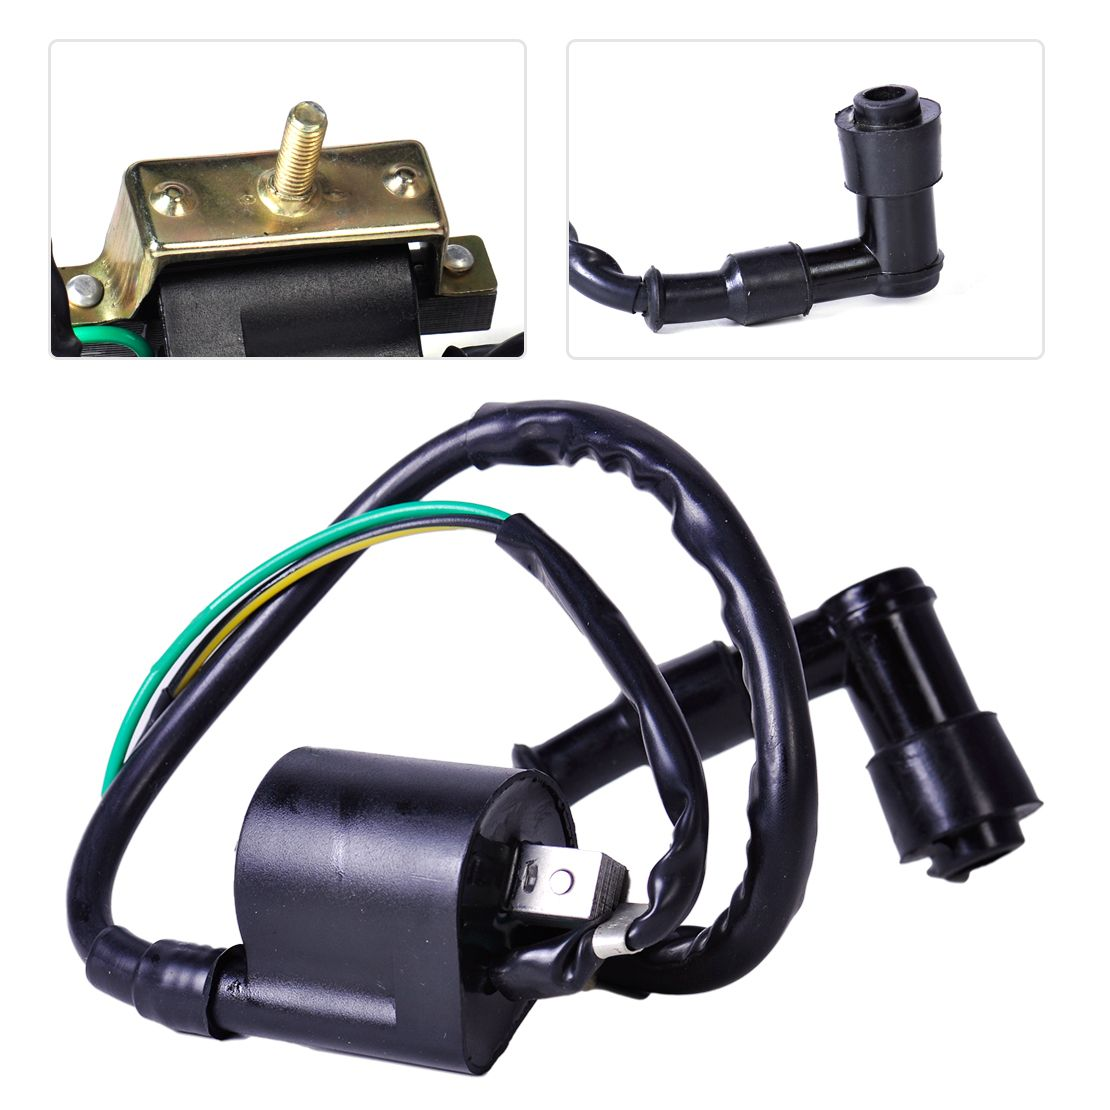 New 1Pc Black Motorbike Ignition Coil Pack fit for 4 Stroke Chinese